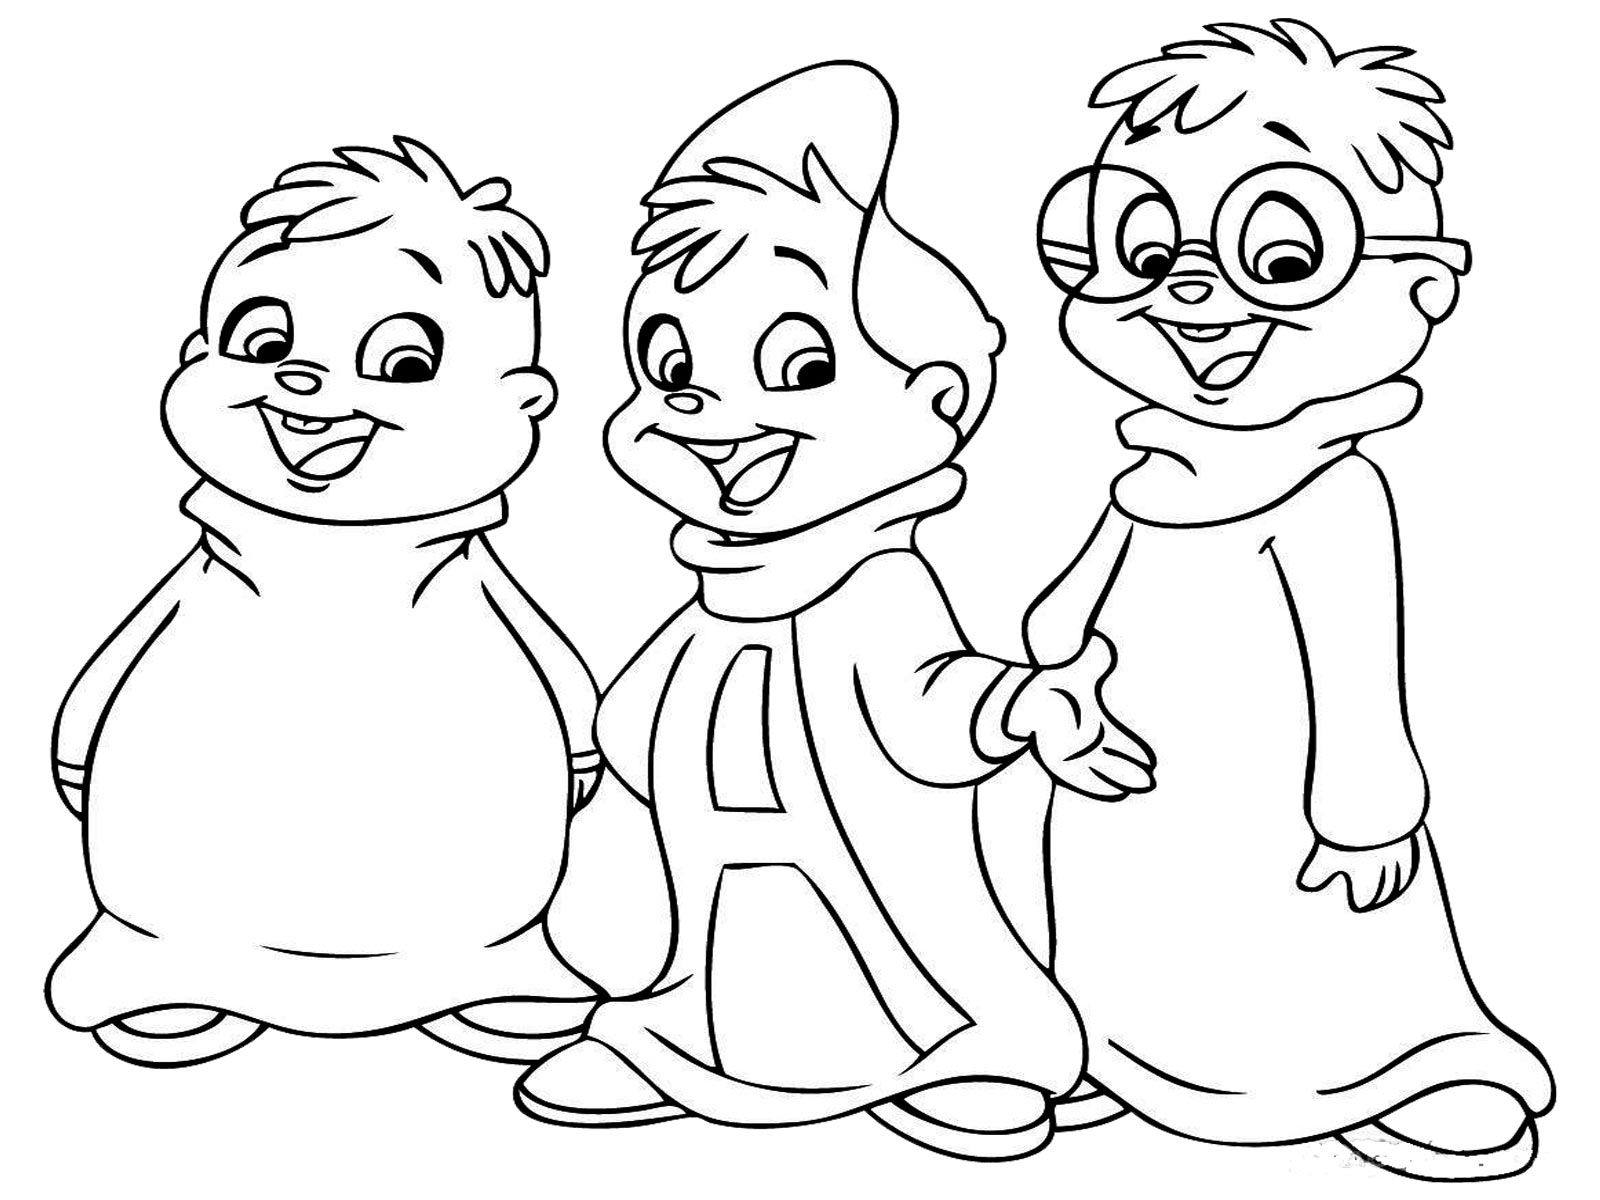 k coloring pages for kids - photo #7